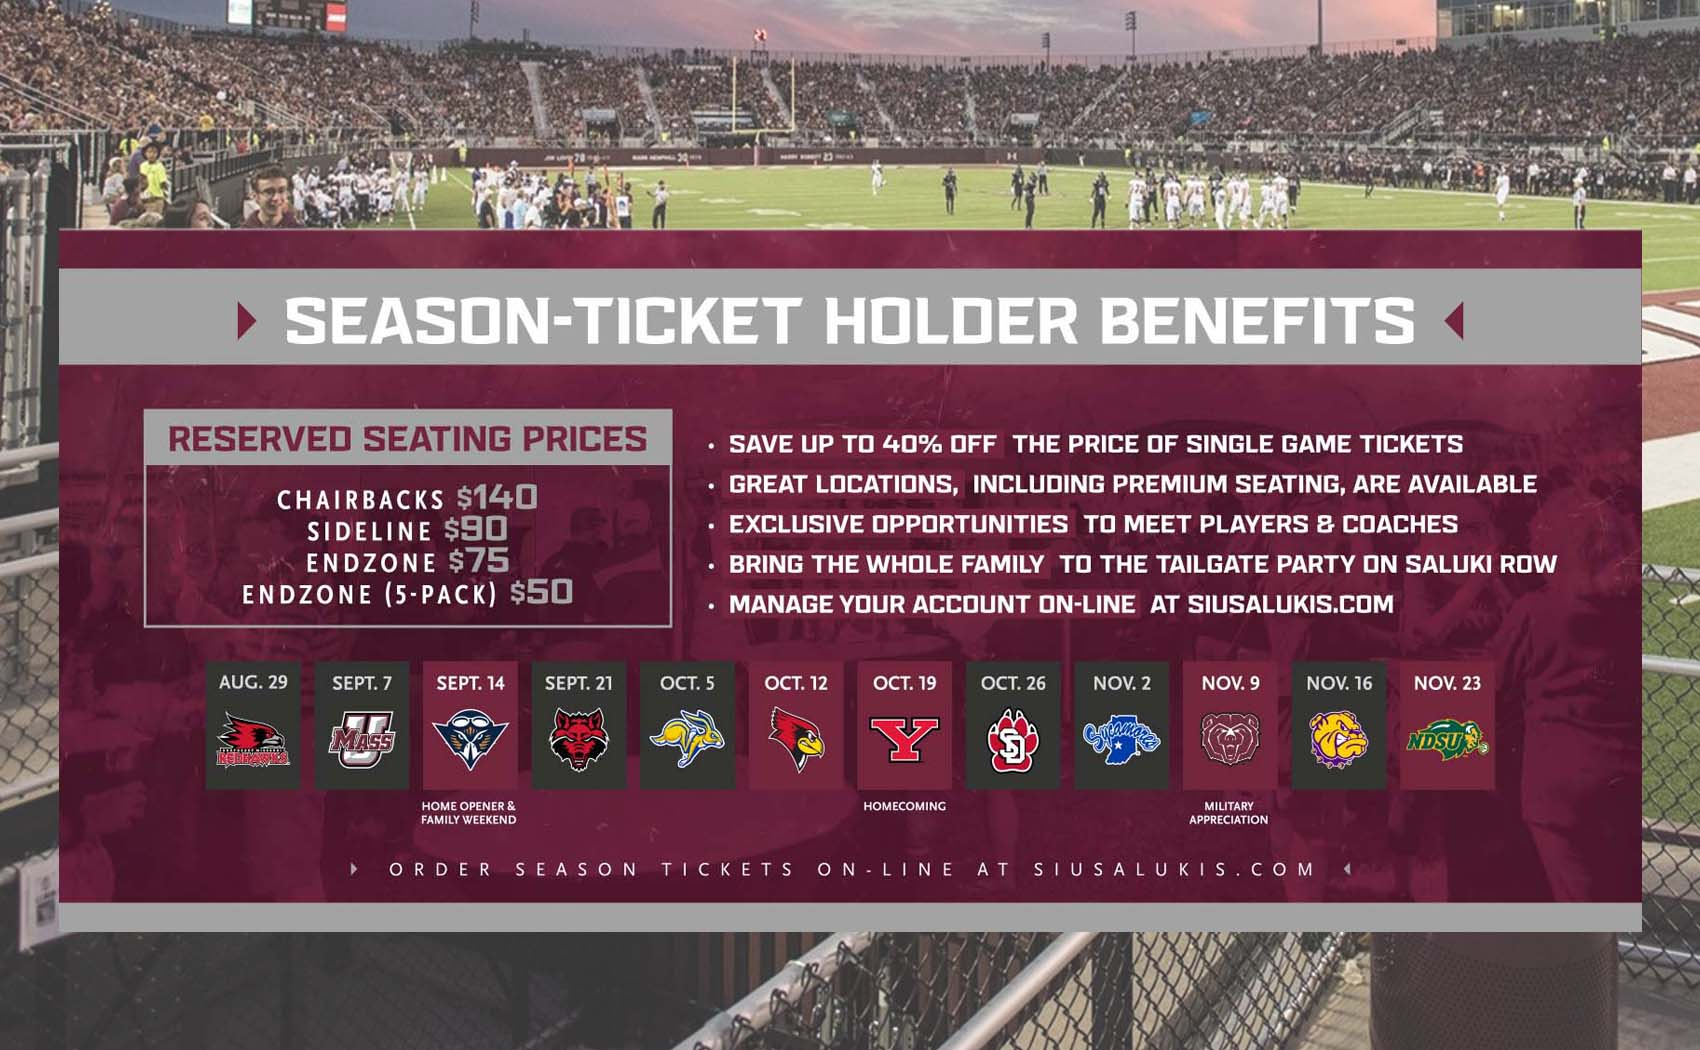 Siu Football Schedule 2020 Saluki Athletics announces 2019 Football schedule and reduced